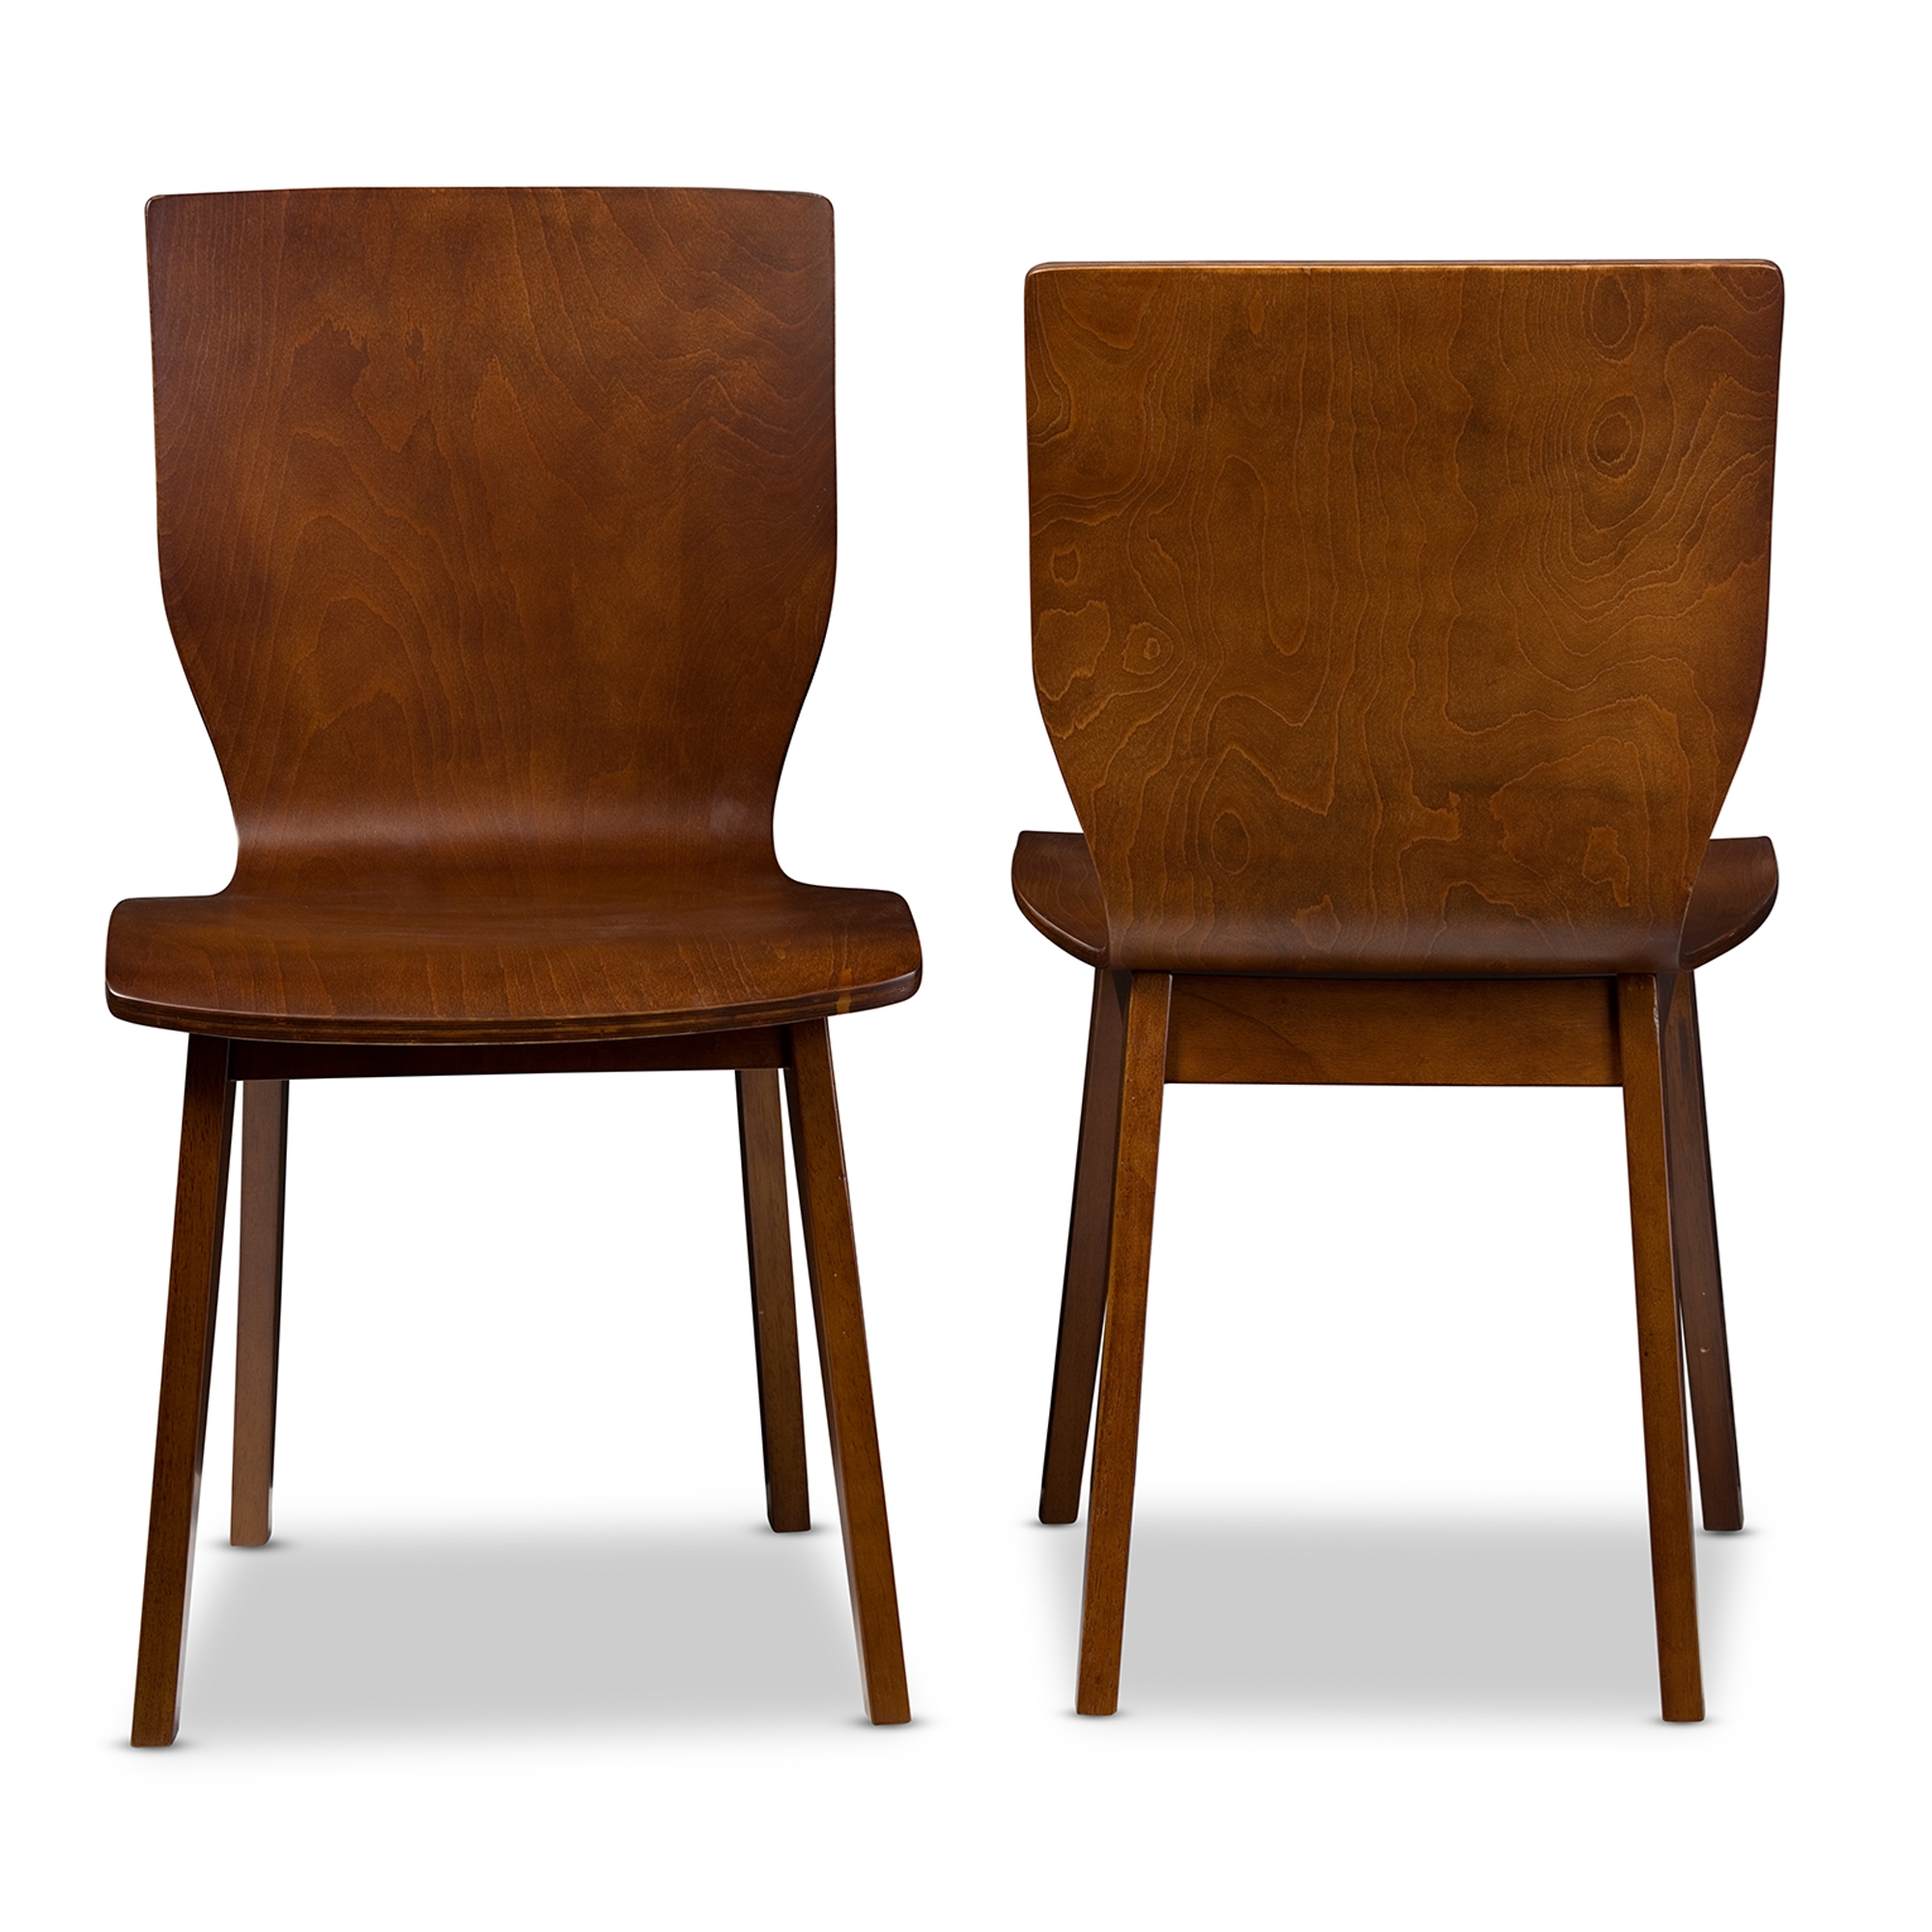 Charmant ... Baxton Studio Elsa Mid Century Modern Scandinavian Style Dark Walnut Bent  Wood Dining Chair ...